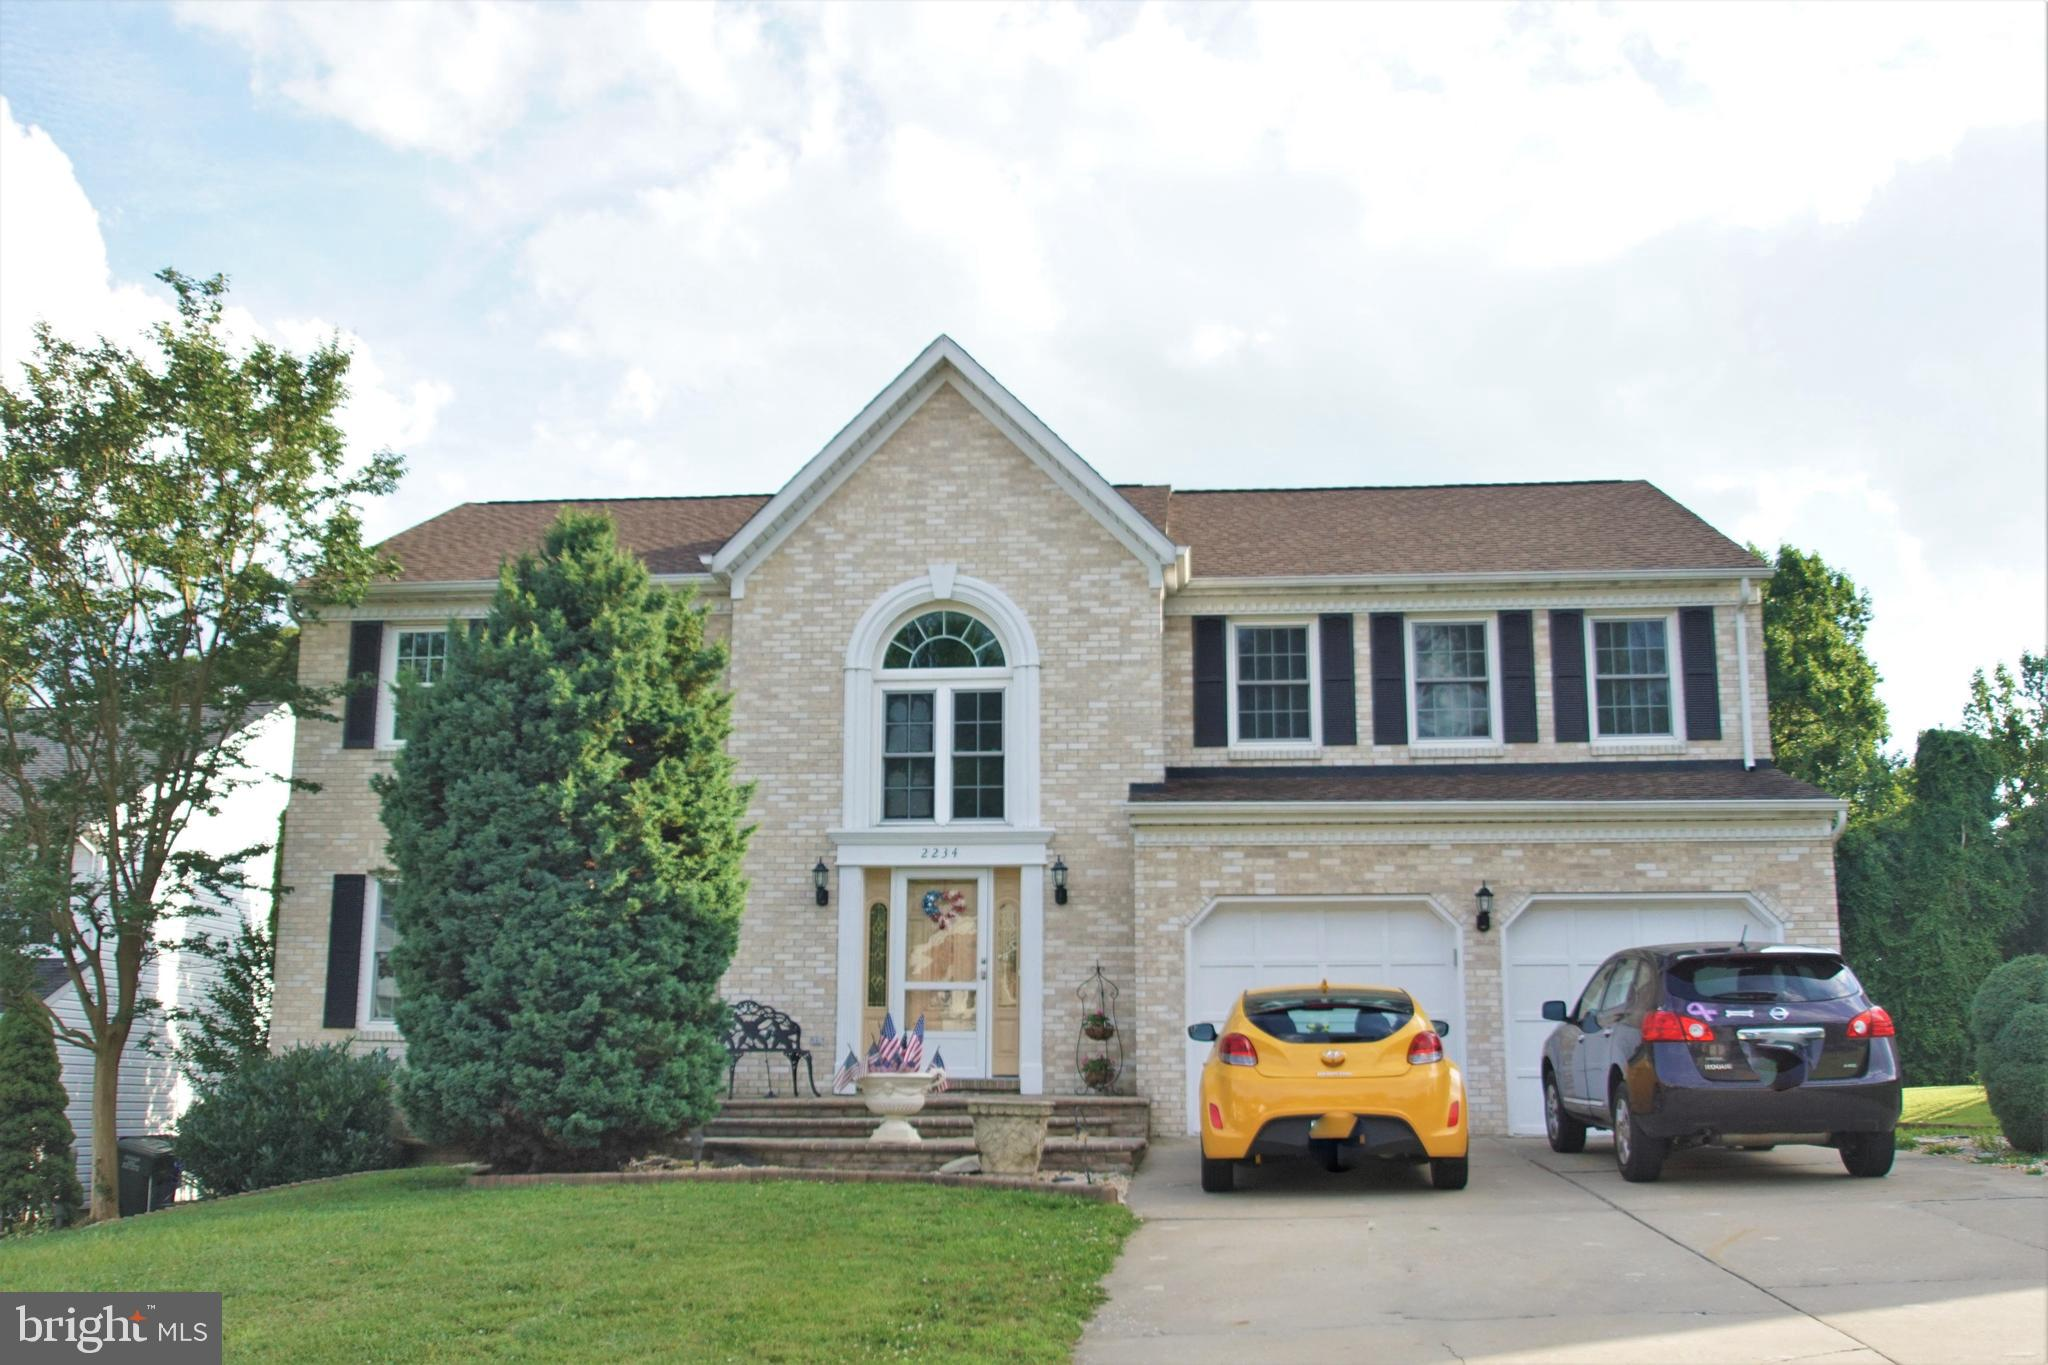 FINANCINGING FELL THRU,  Honey I am home, this brick front colonial  located in saddle ridge /hunter